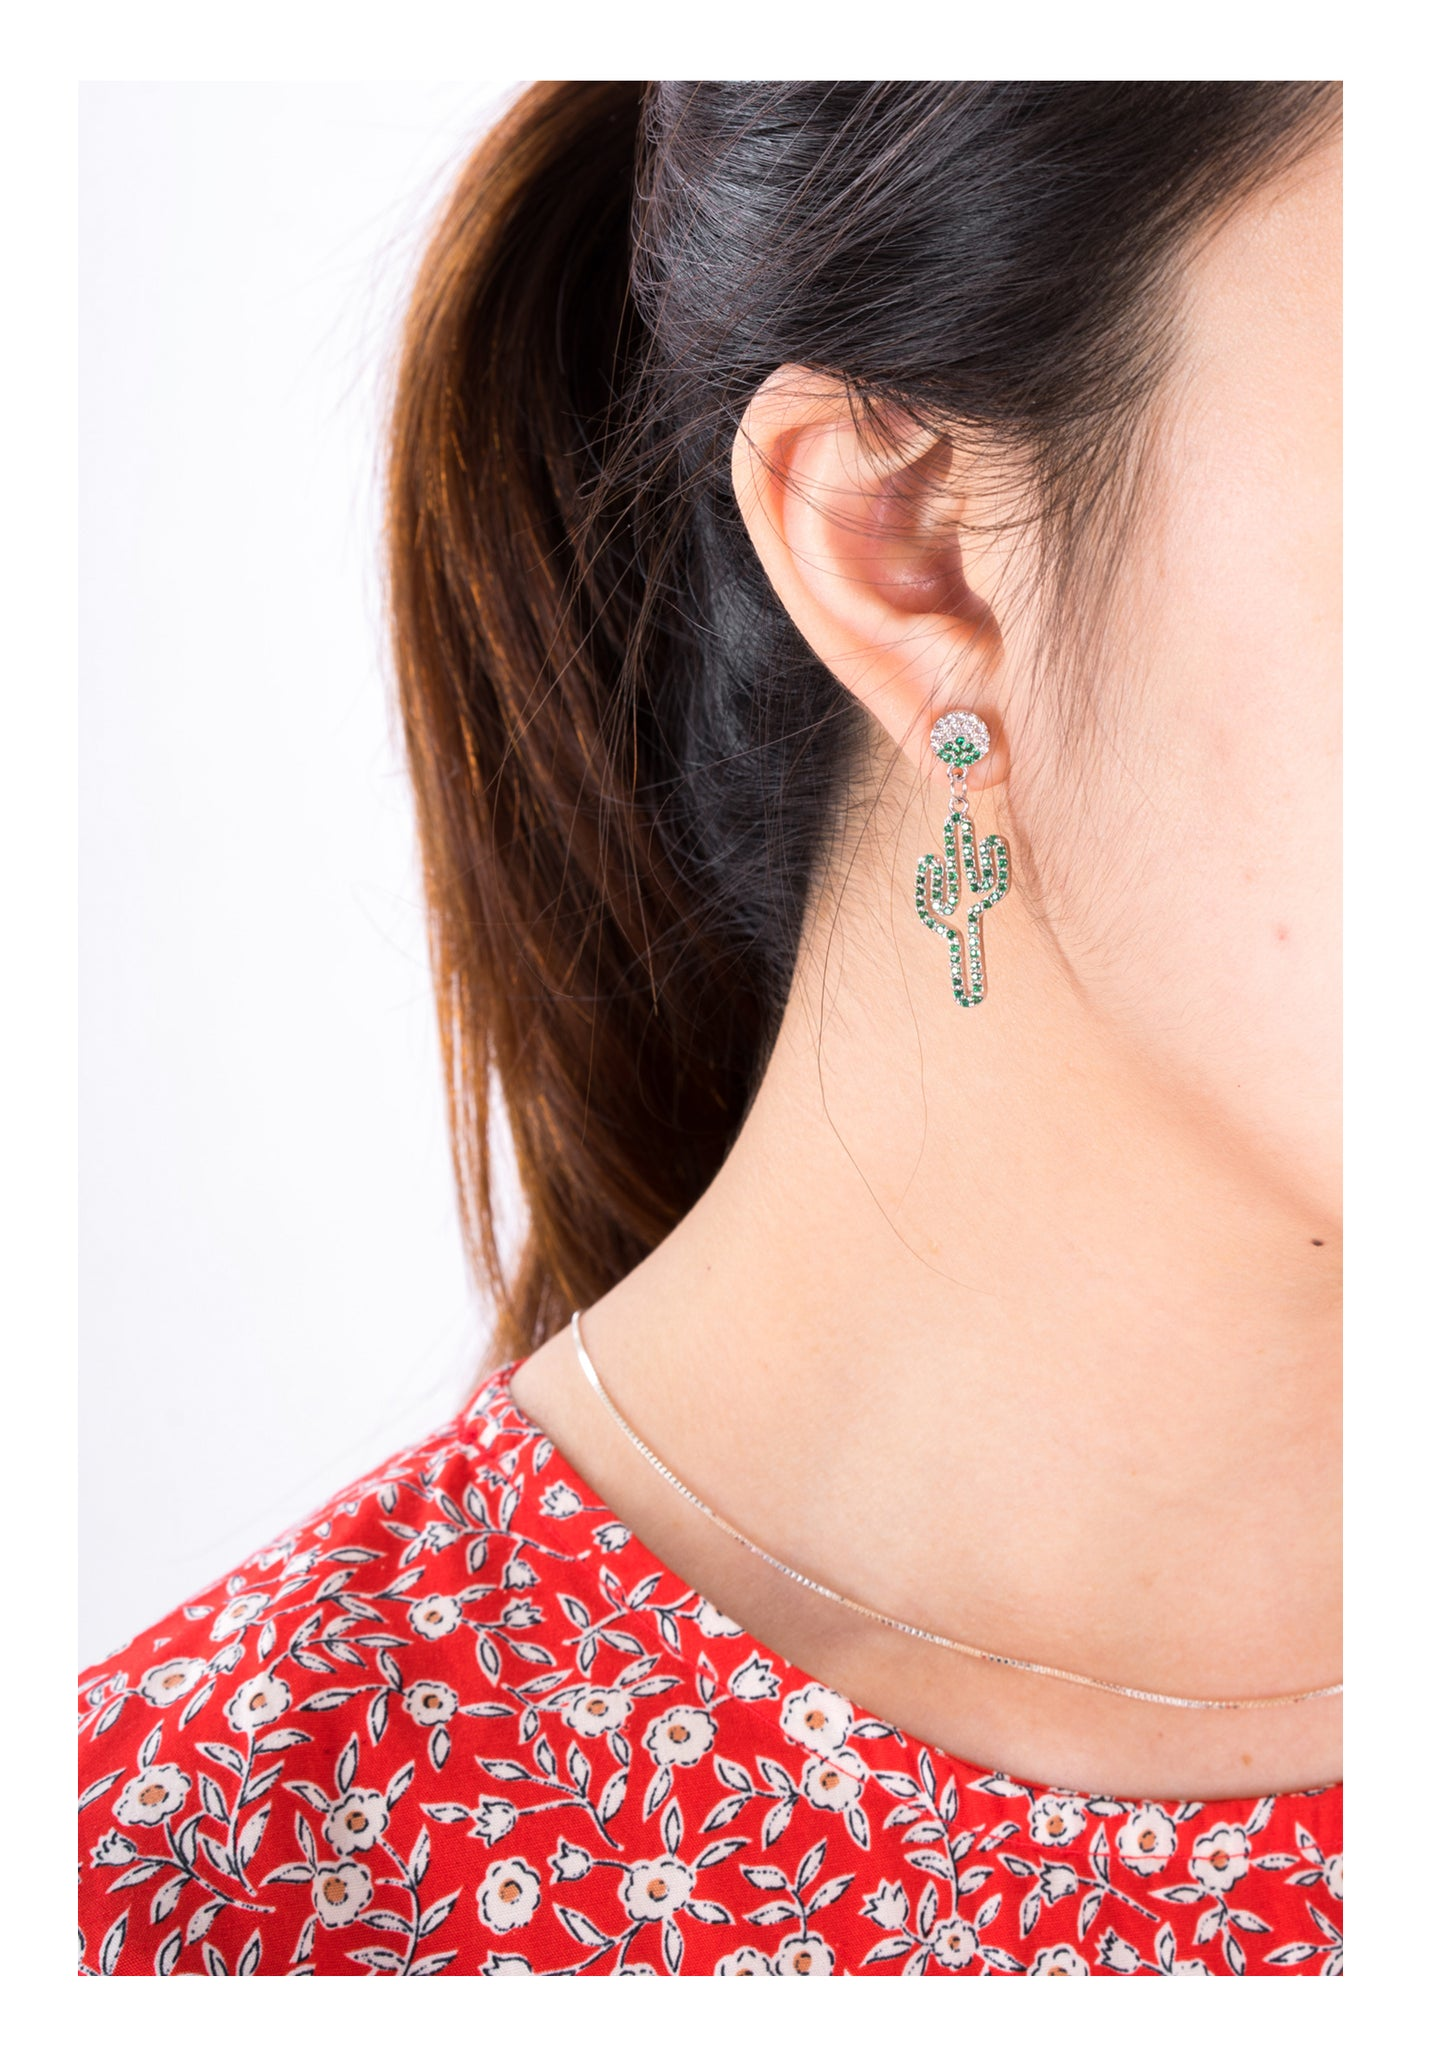 Flamingo and Cactus Earrings